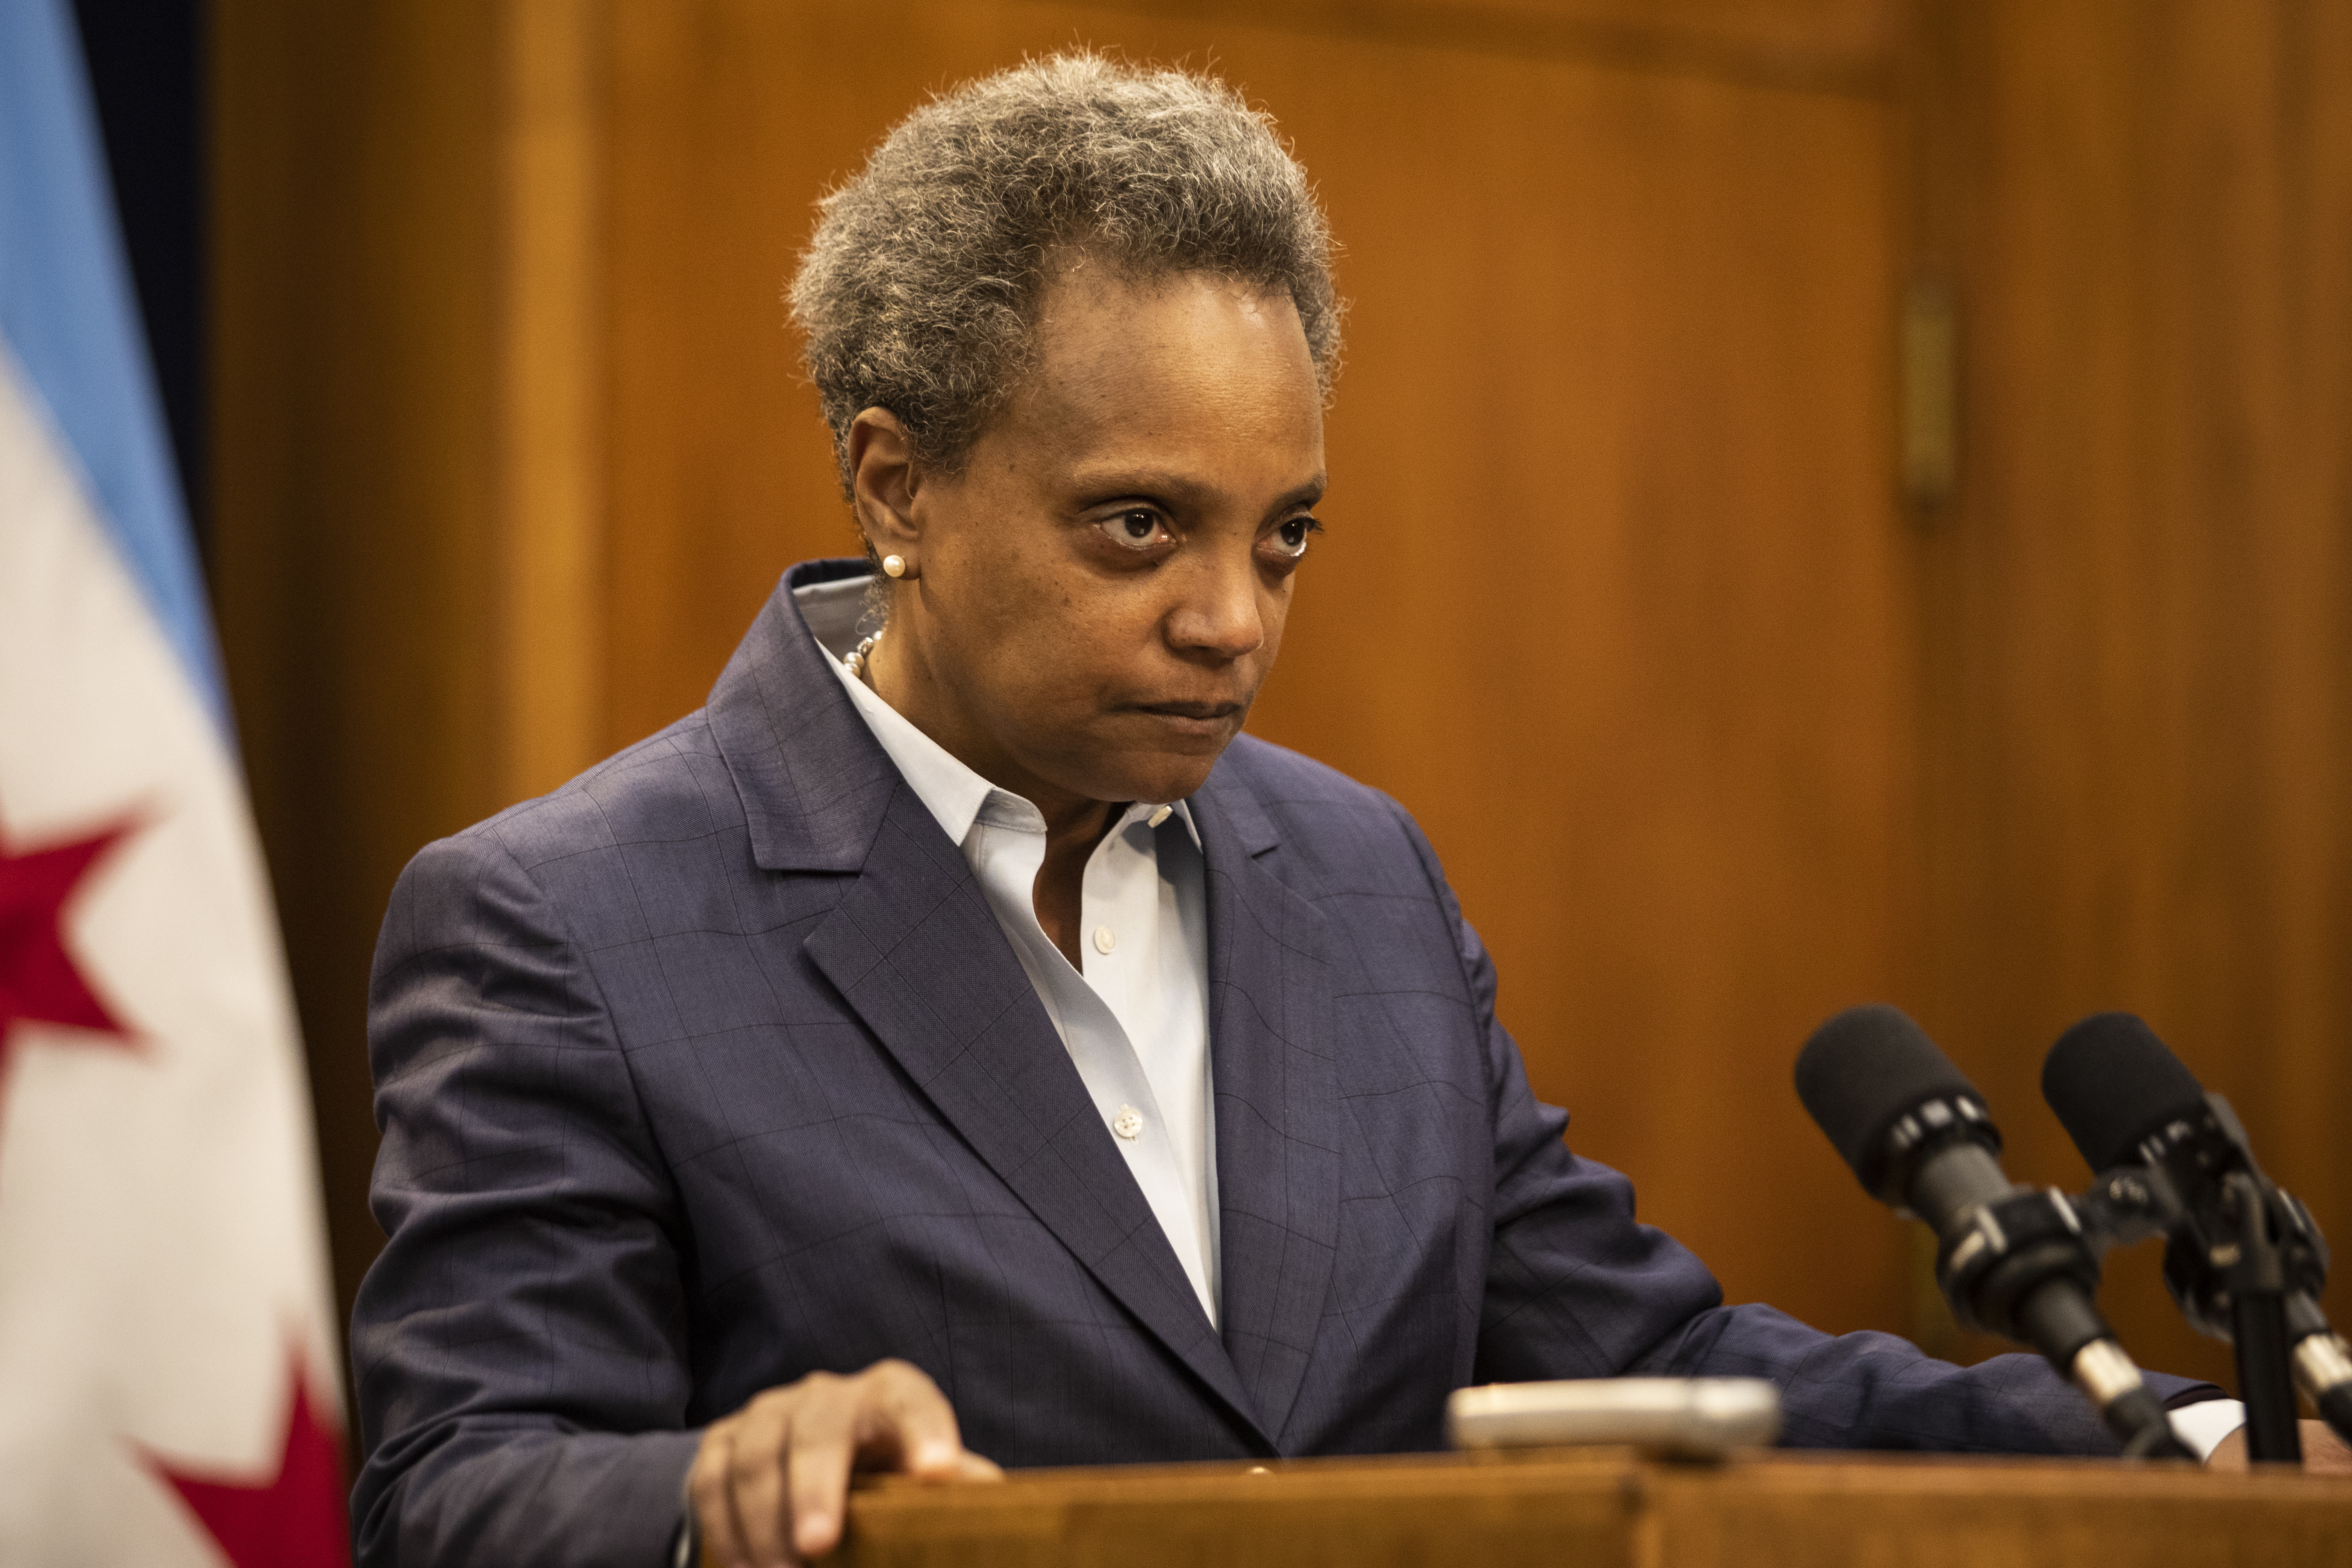 Mayor Lori Lightfoot at a news conference in December 2019.